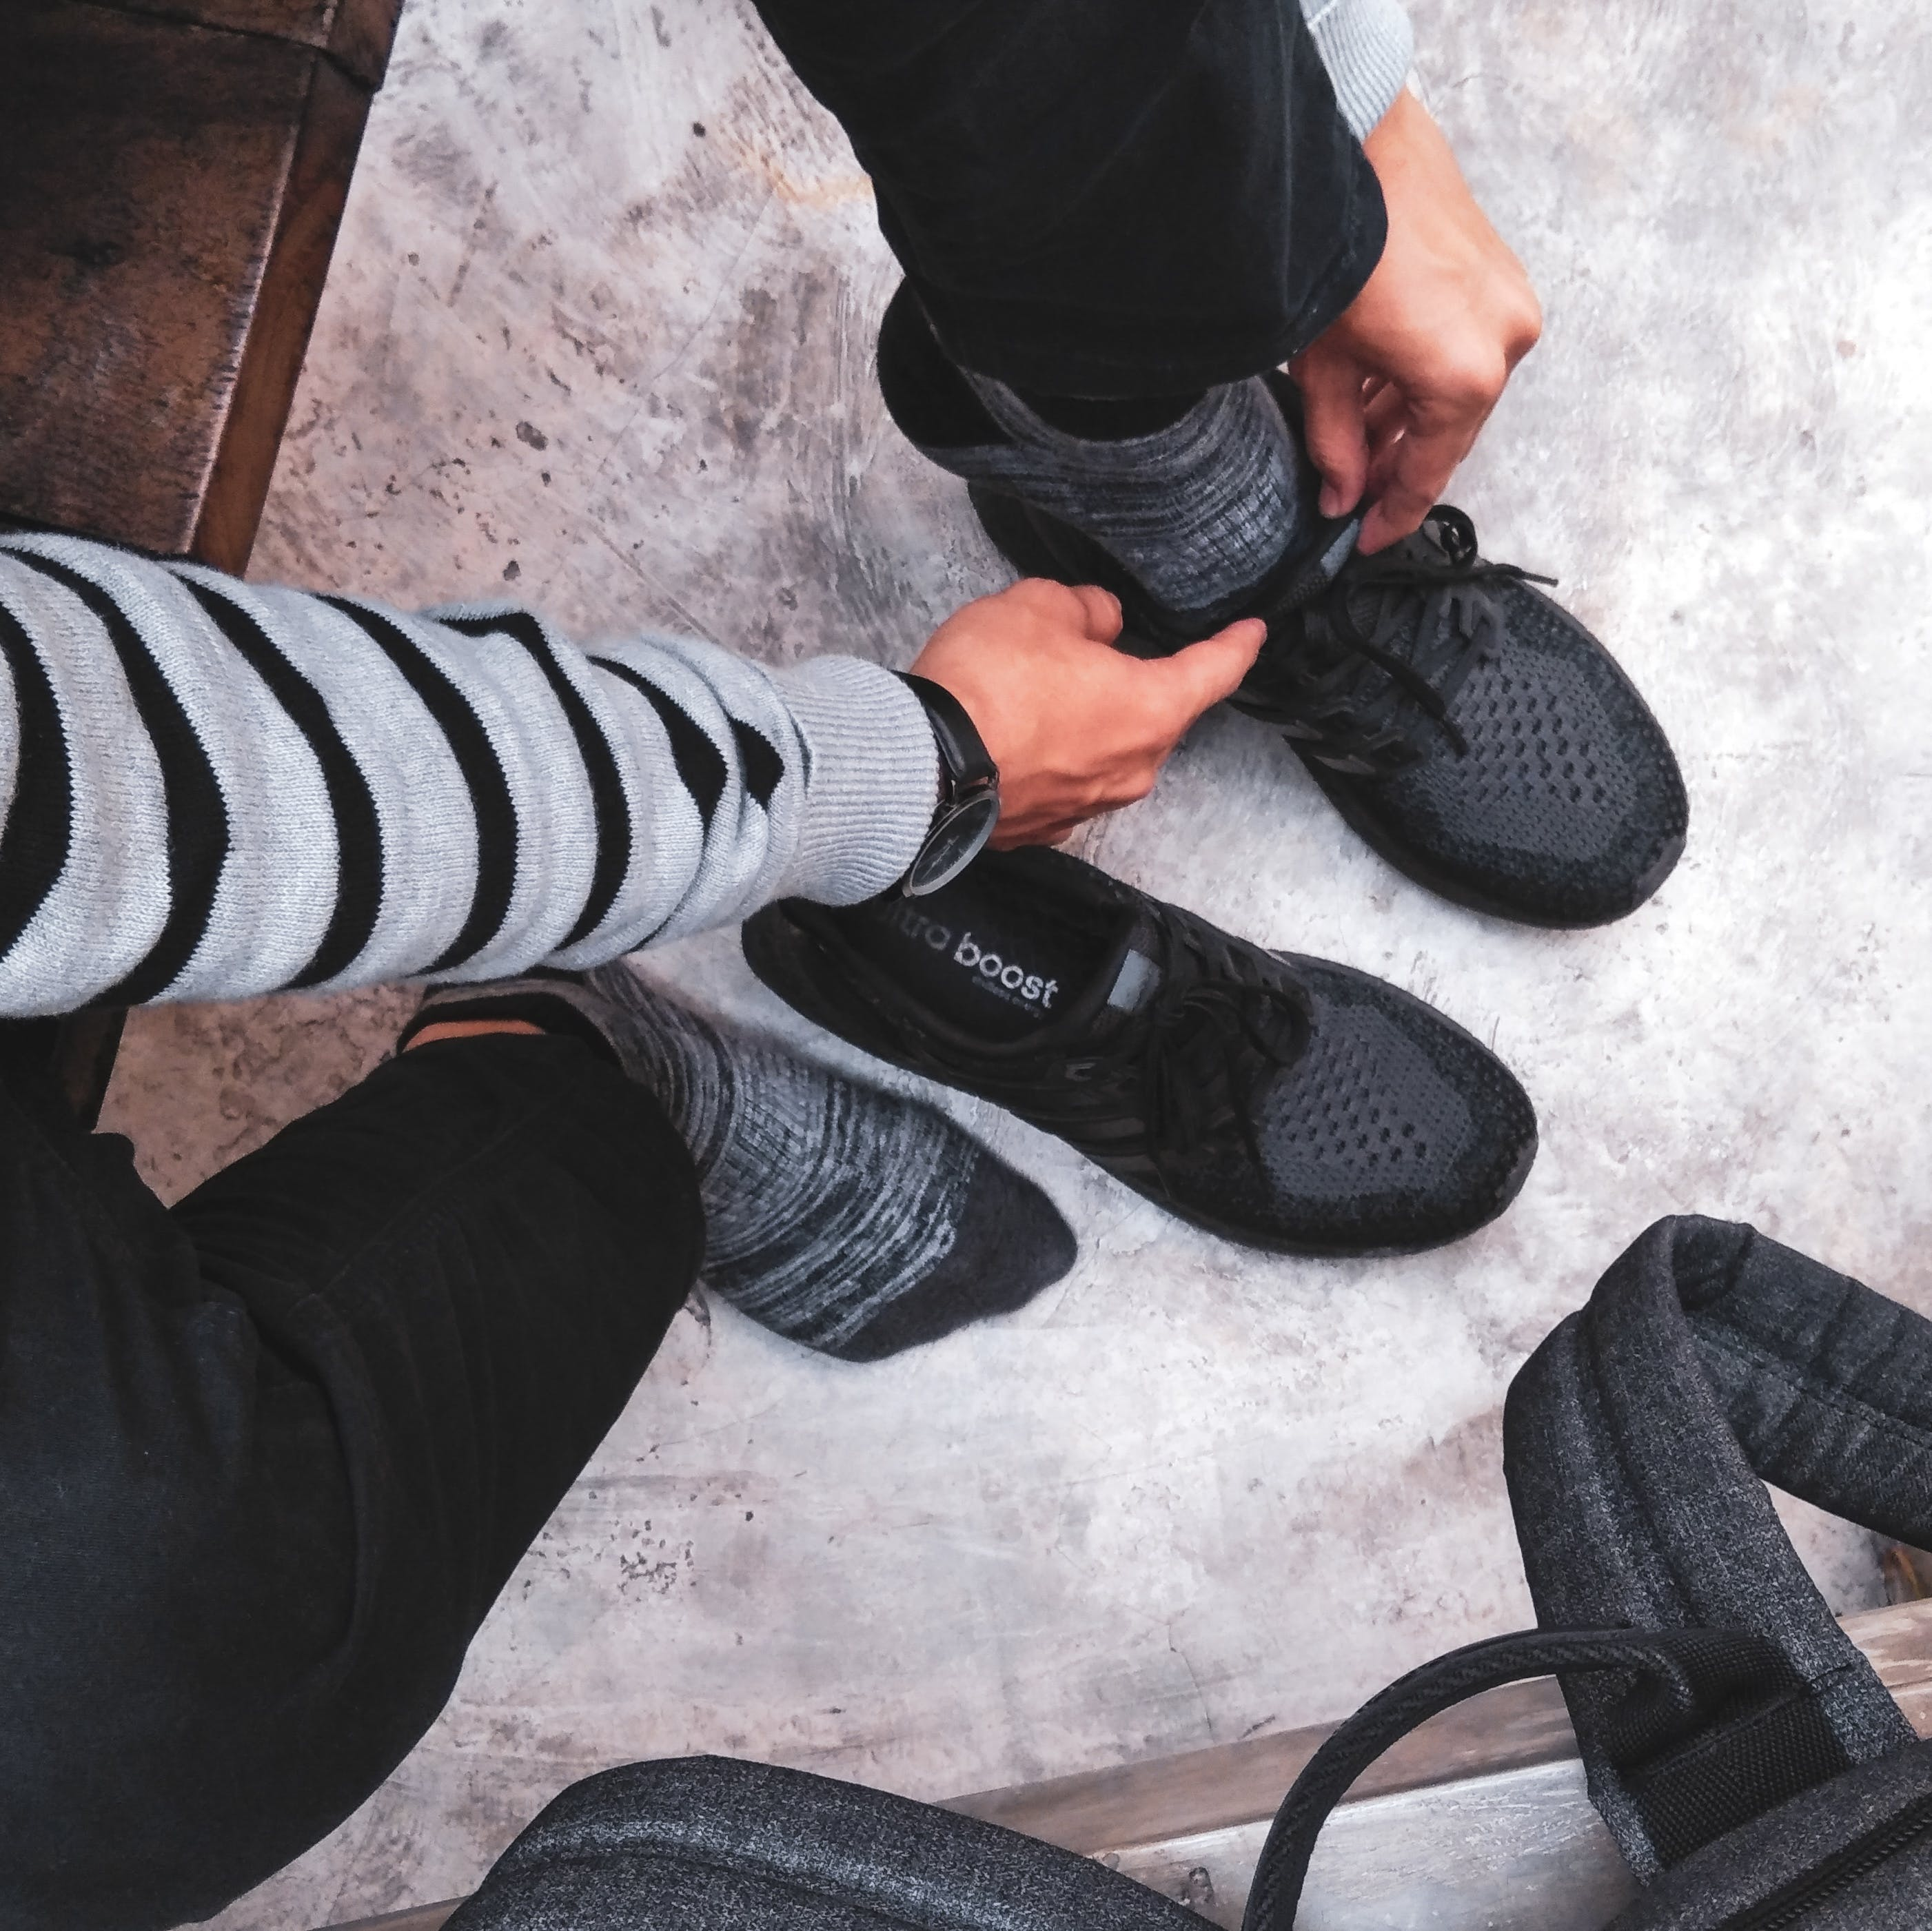 Person Wear Black Adidas Shoes